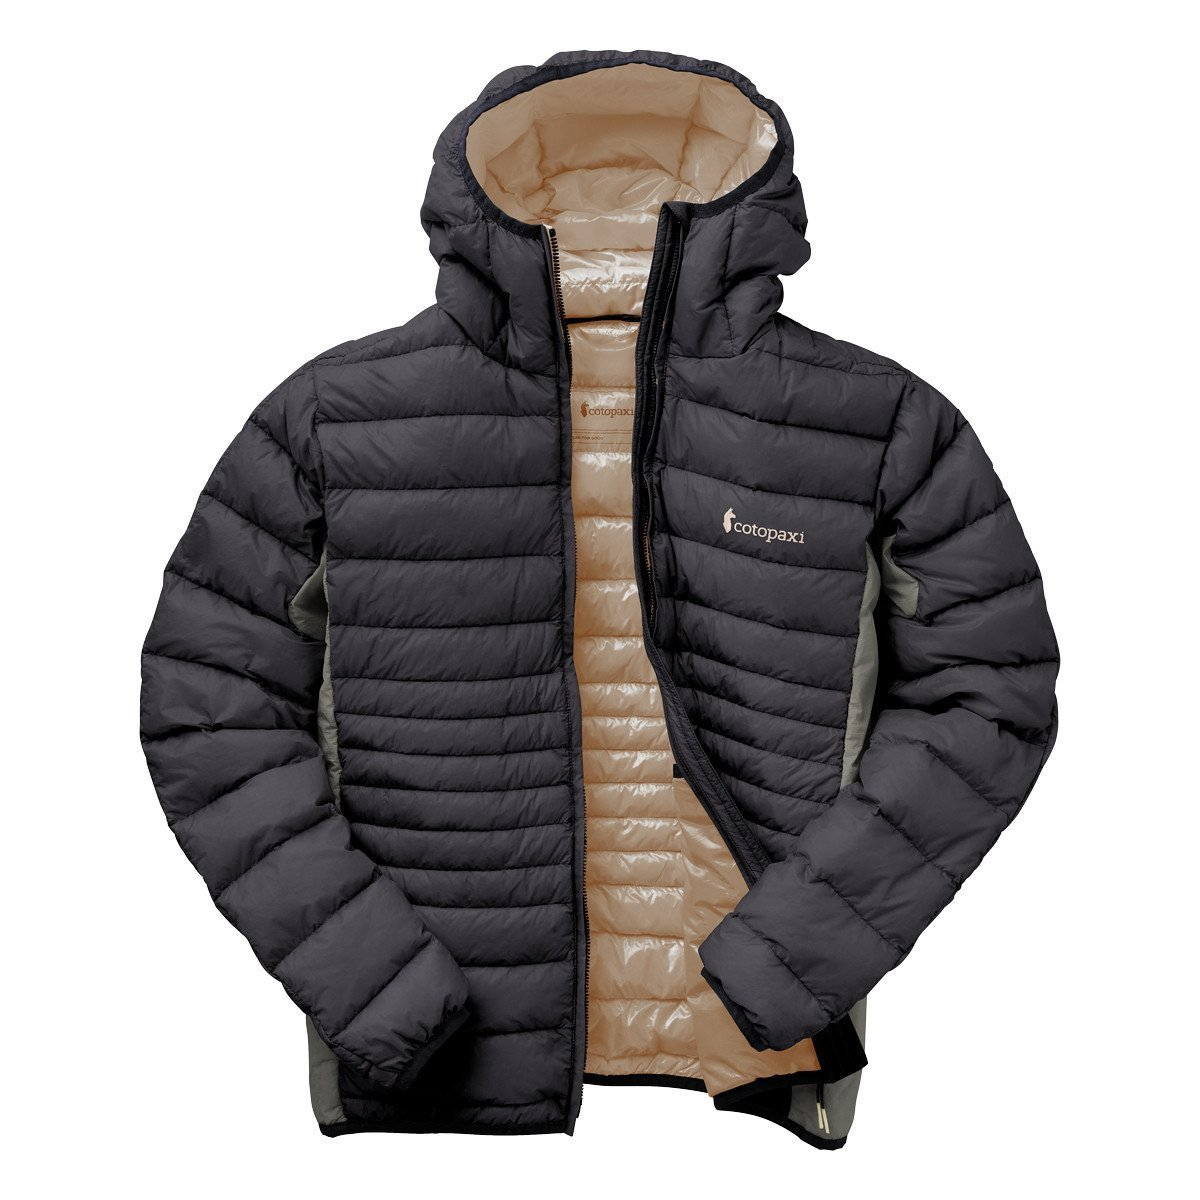 74c3027624f Get Quotations · Cotopaxi Fuego - Women's 800 Fill Down Puffy Jacket with  Polartec Alpha Technology